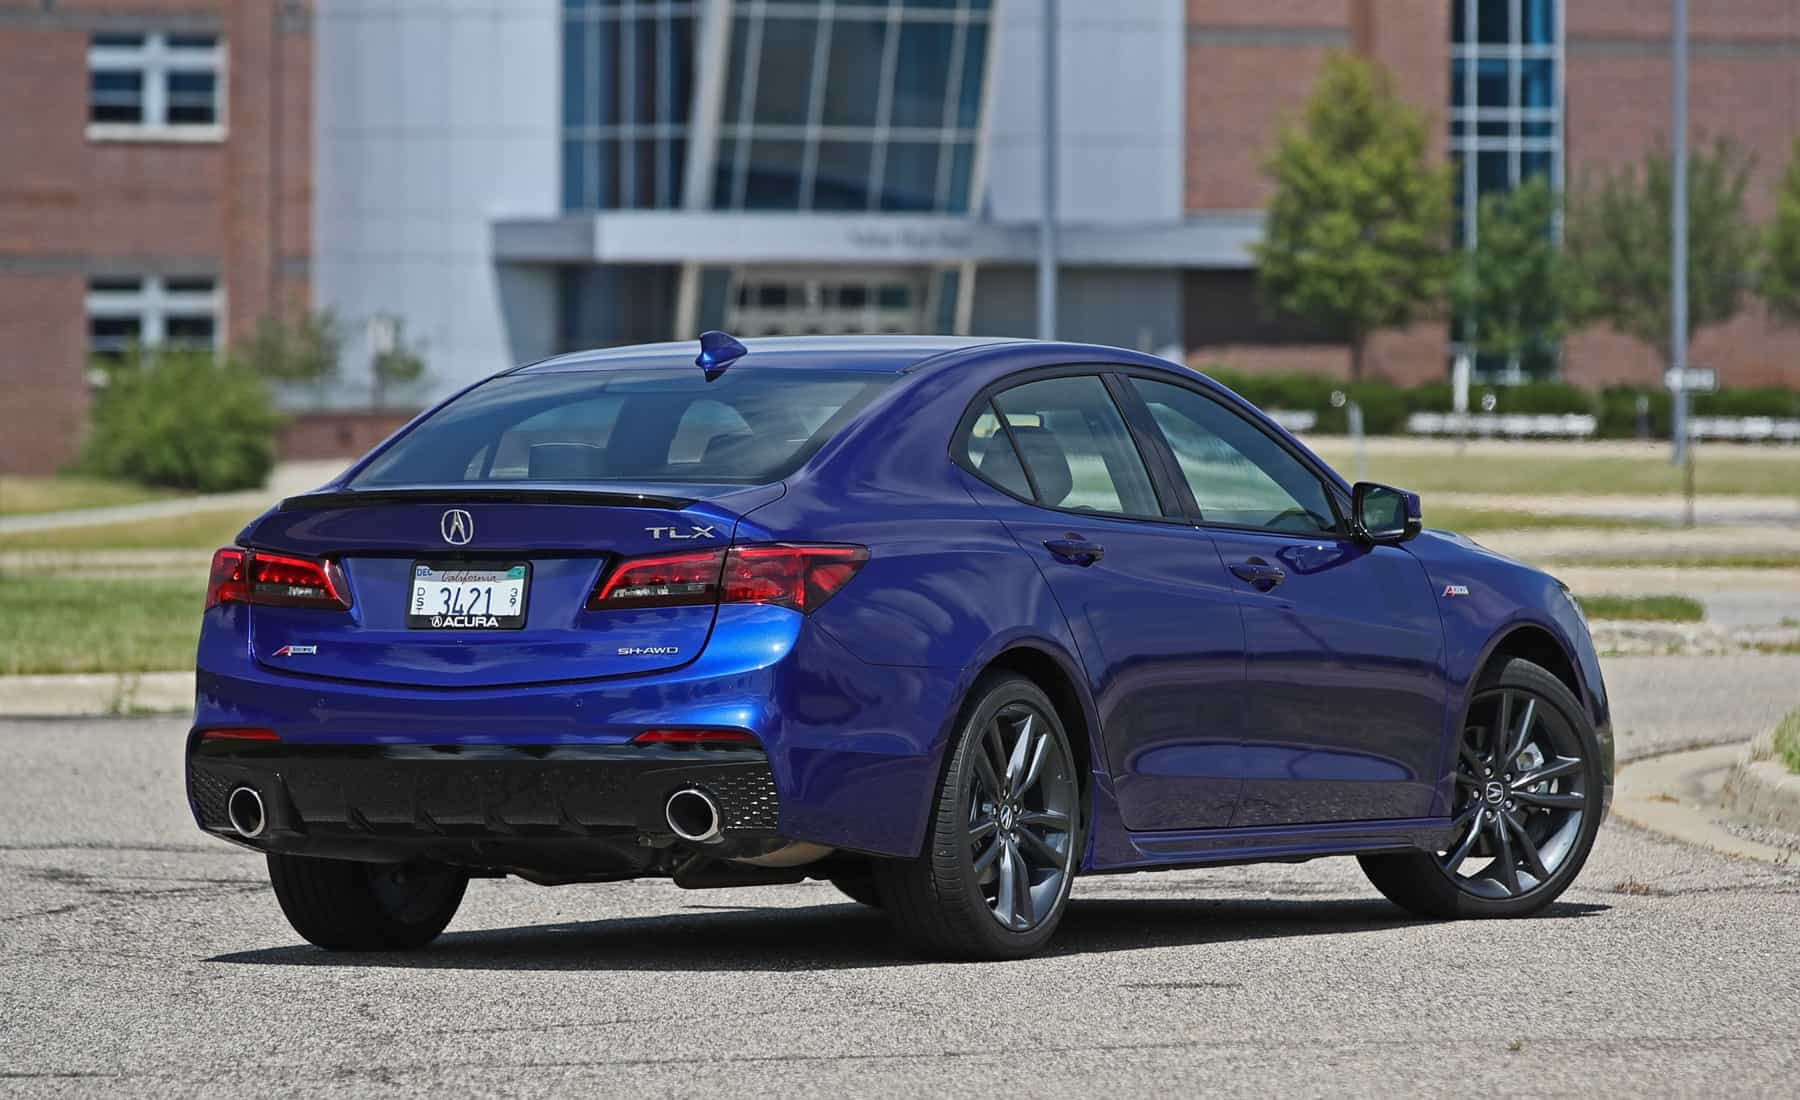 2018 Acura TLX Exterior Rear (Photo 41 of 46)